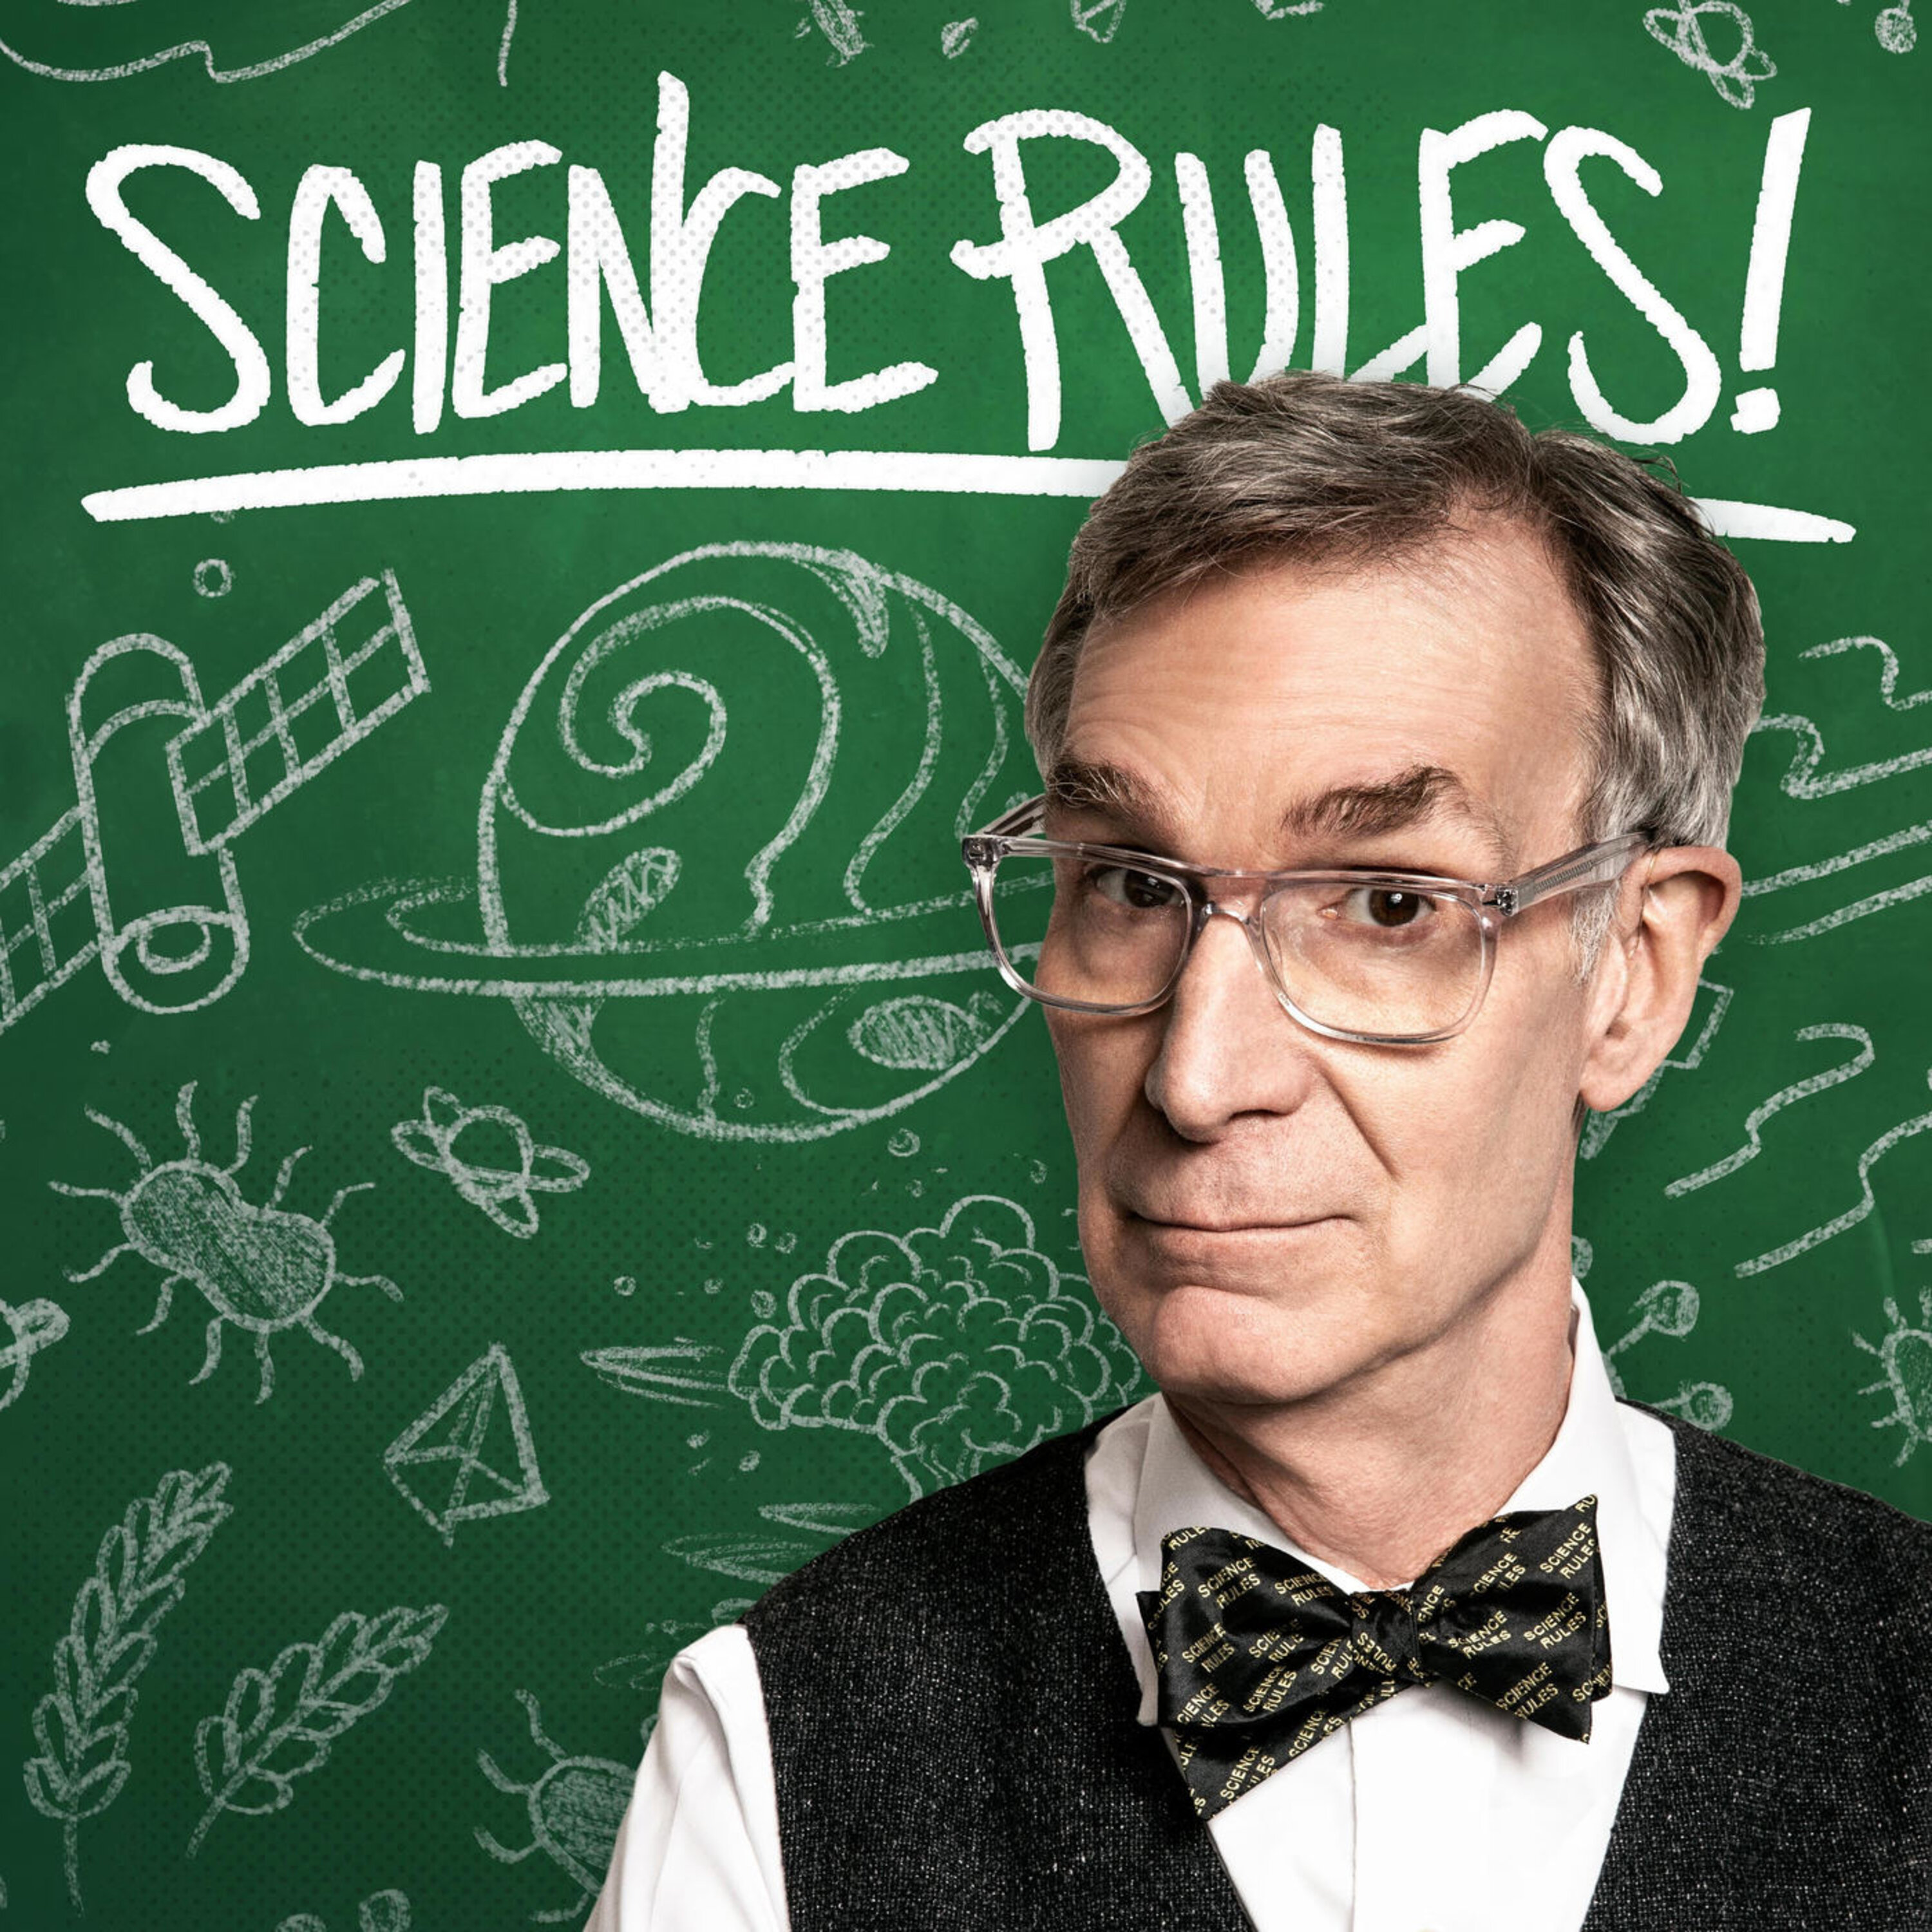 Science Rules! with Bill Nye